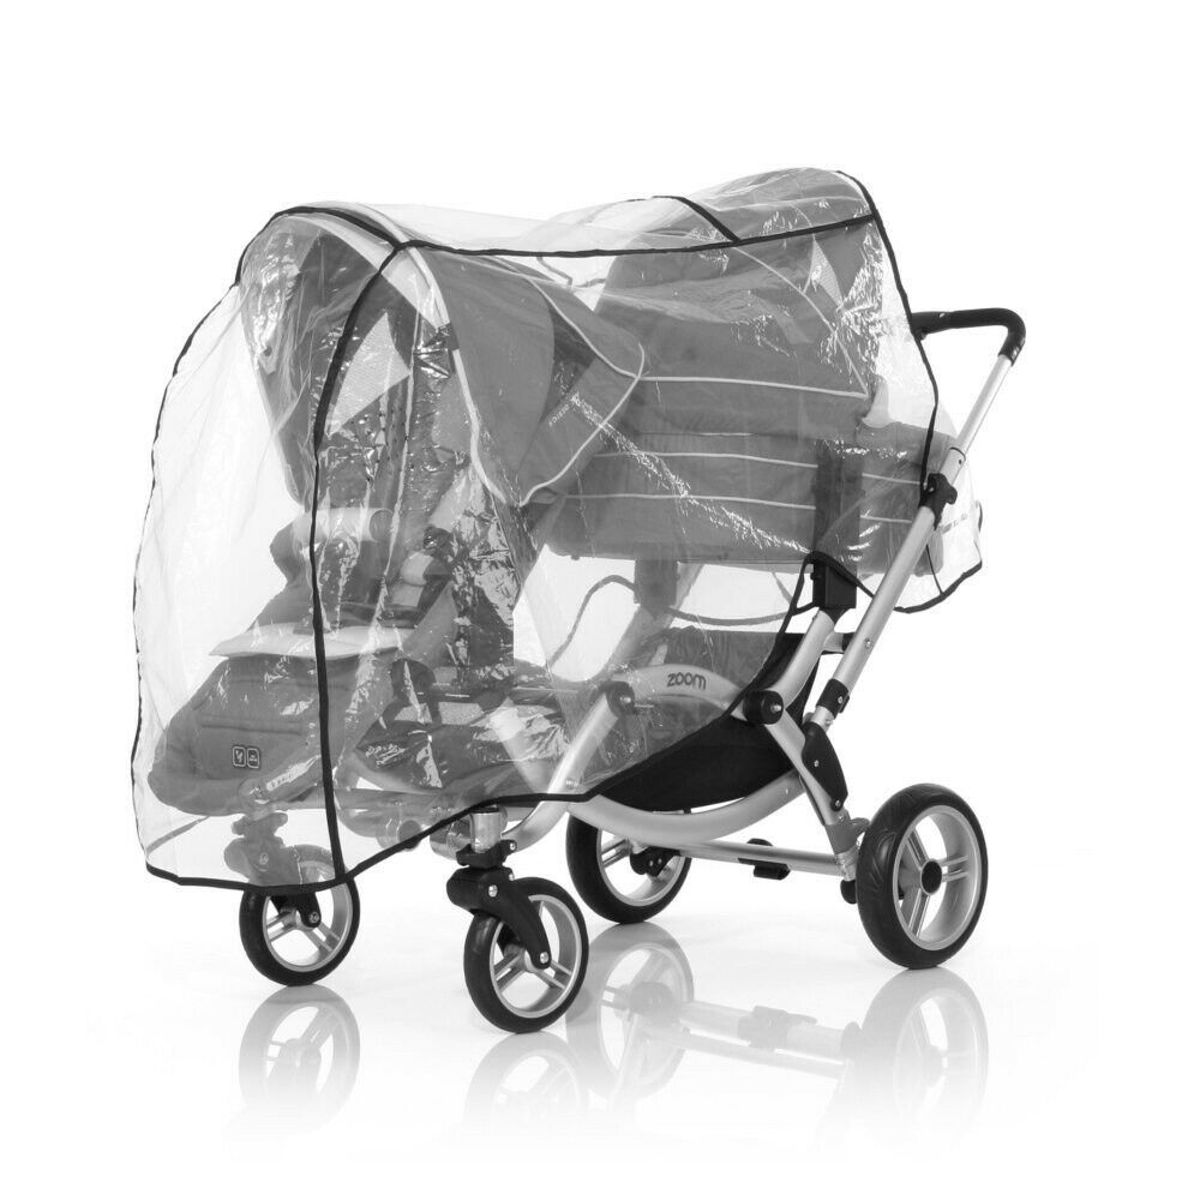 Tweeling Kinderwagen Abc Zoom Bol Abc Design Zoom Regenhoes